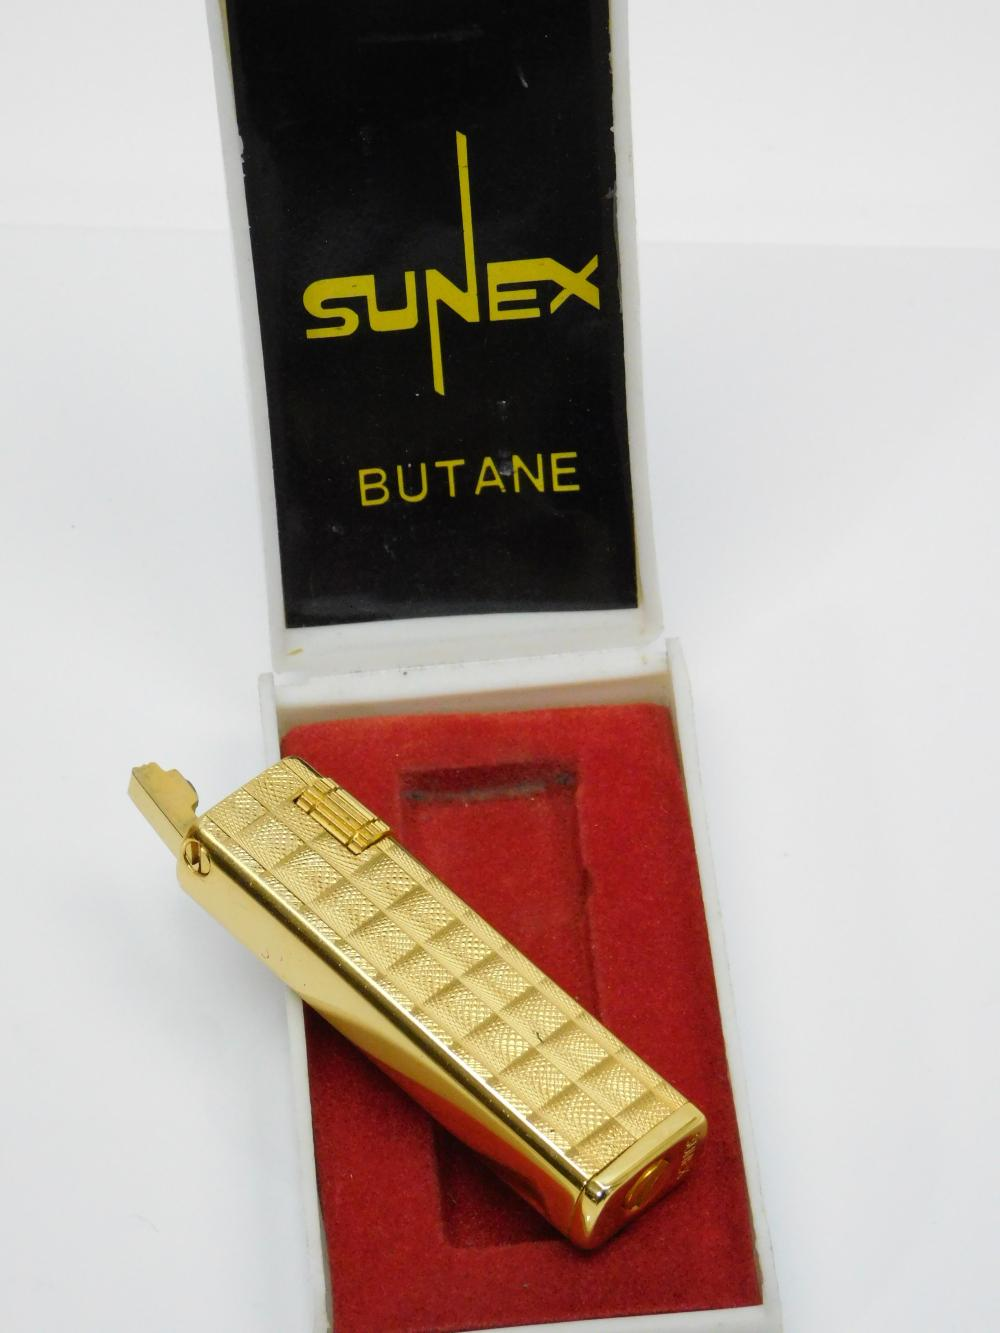 Vintage Sunex Goldtone Refillable Butane Lighter In Original Box